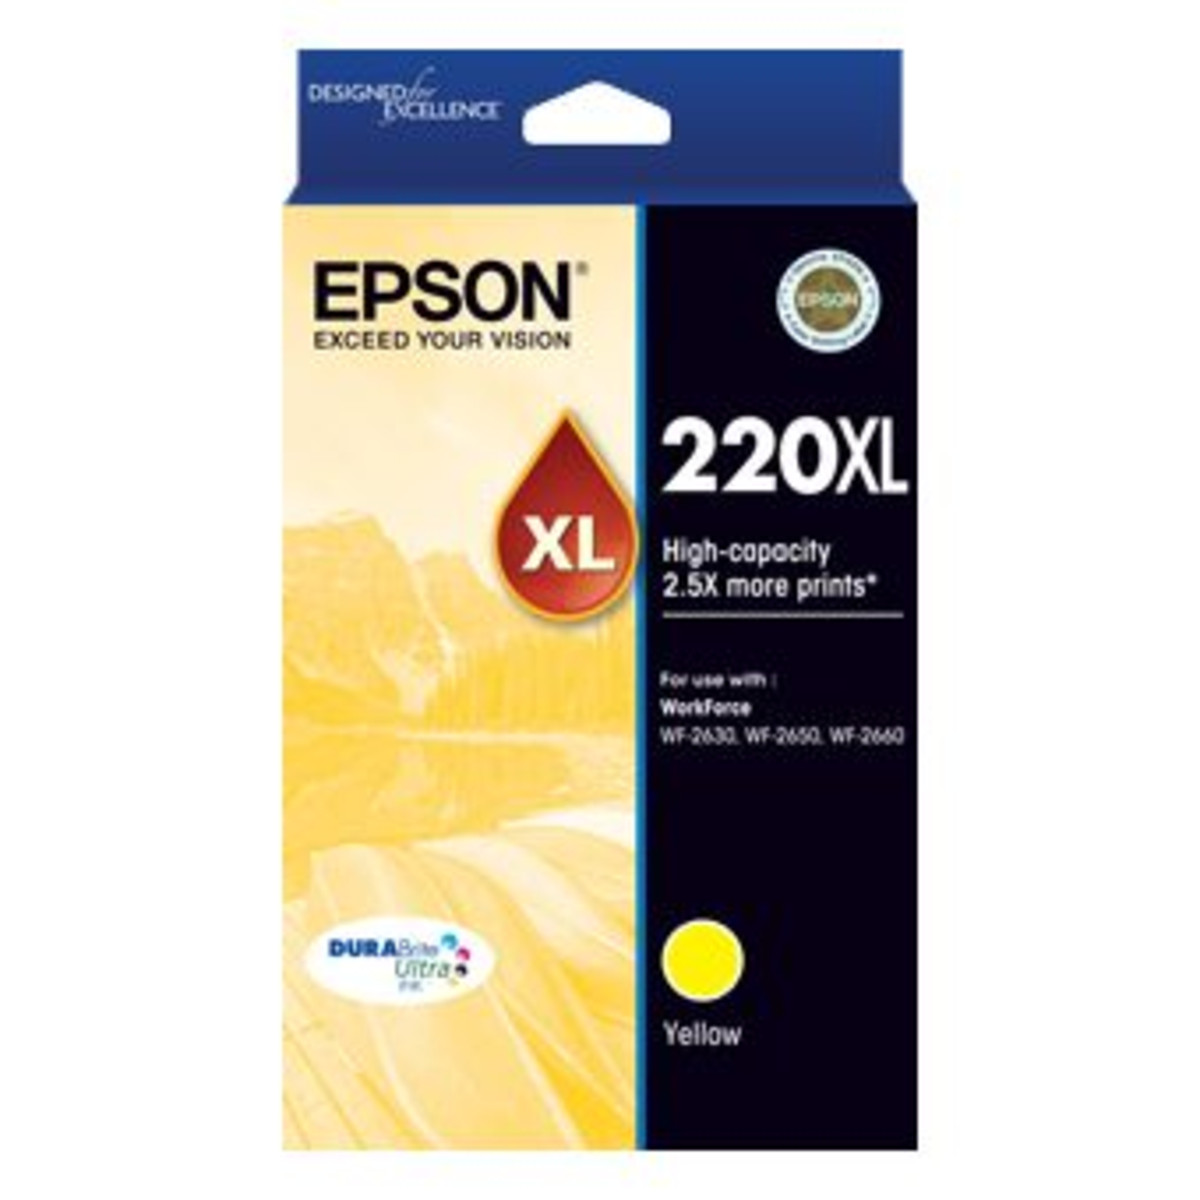 Epson 220XL Yellow Ink Cartridge - High Yield